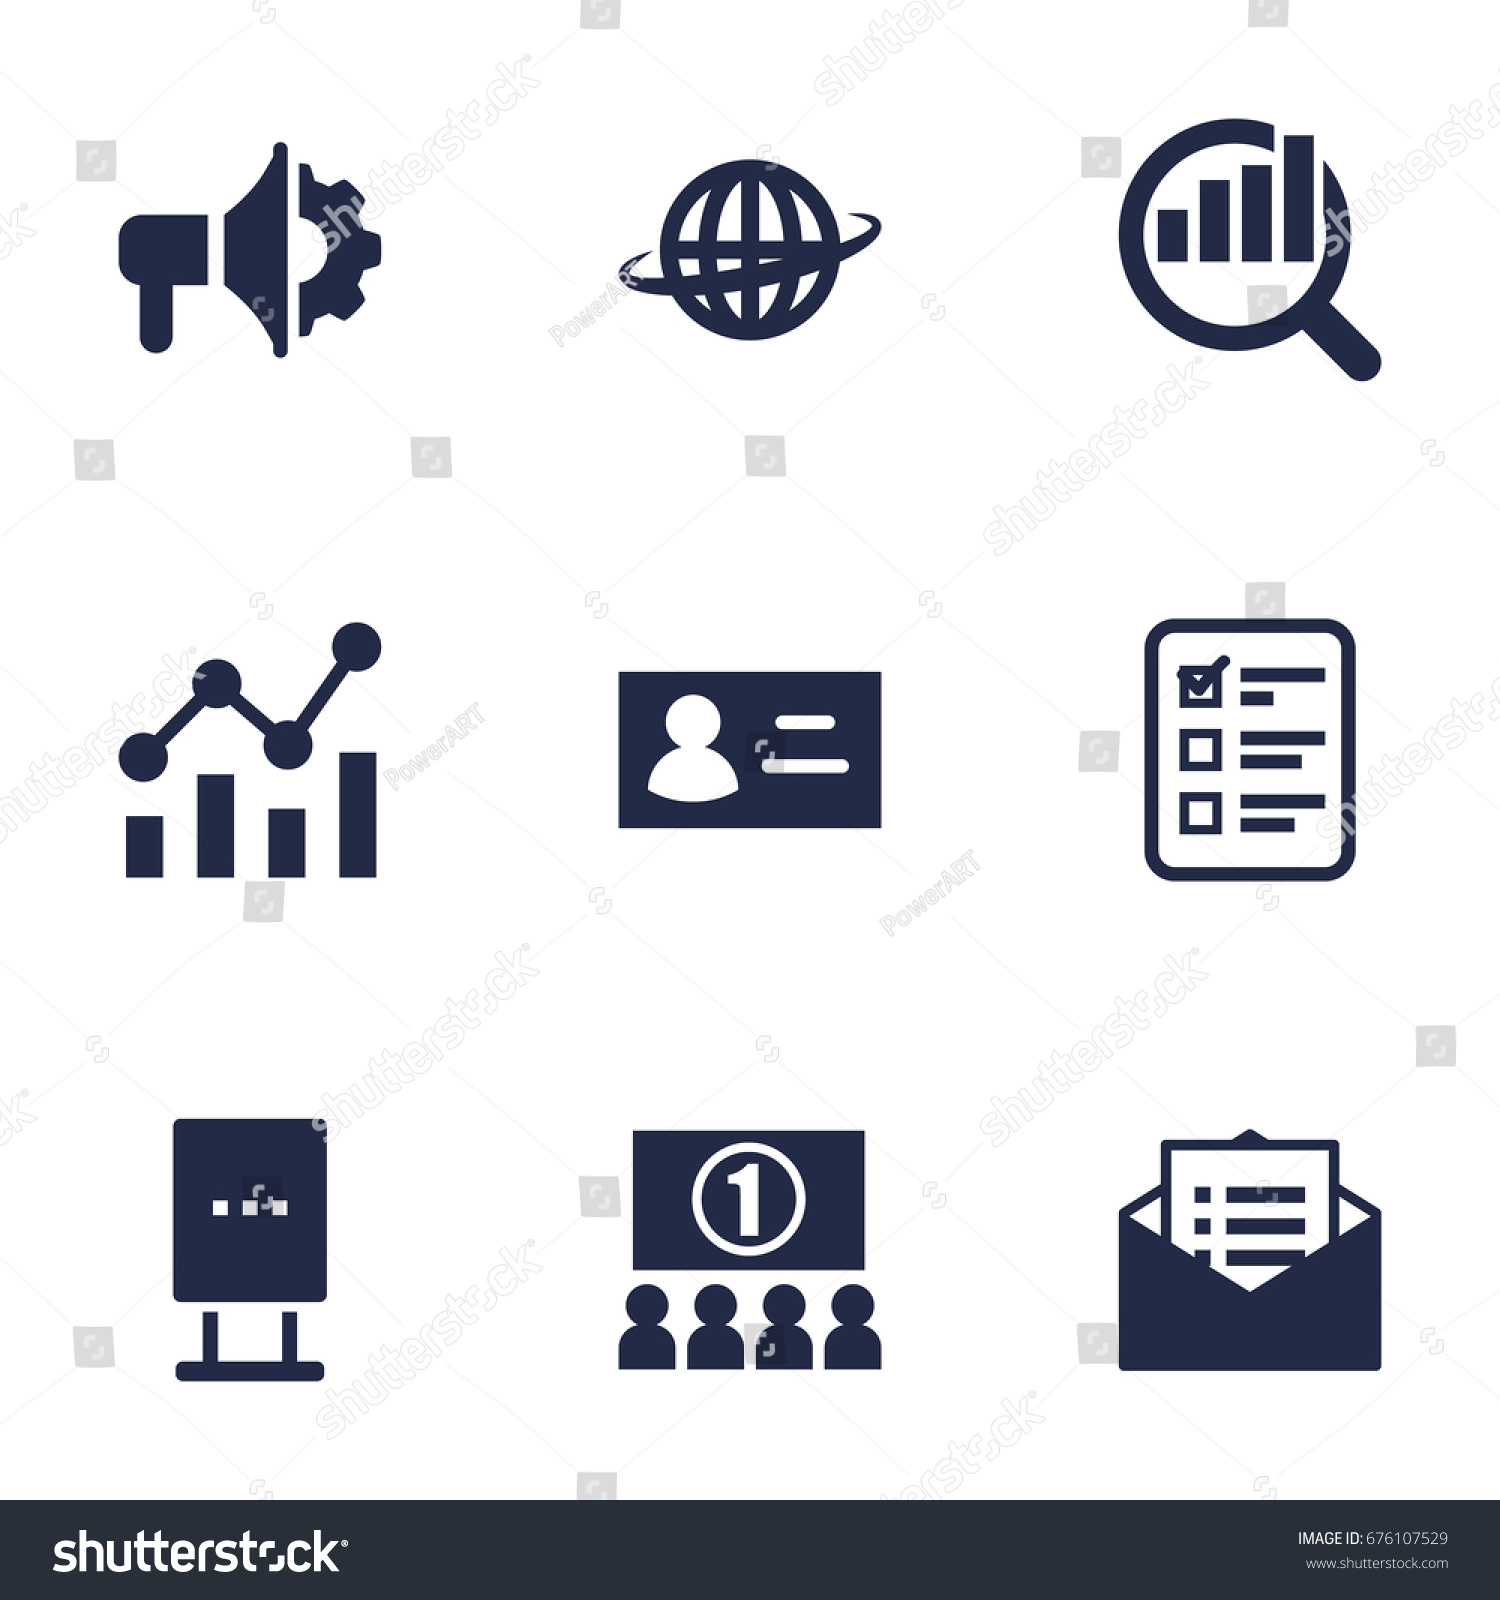 Set Of 9 Commercial Icons Set.Collection Of Market, Statistics, Auditorium And Other Elements.